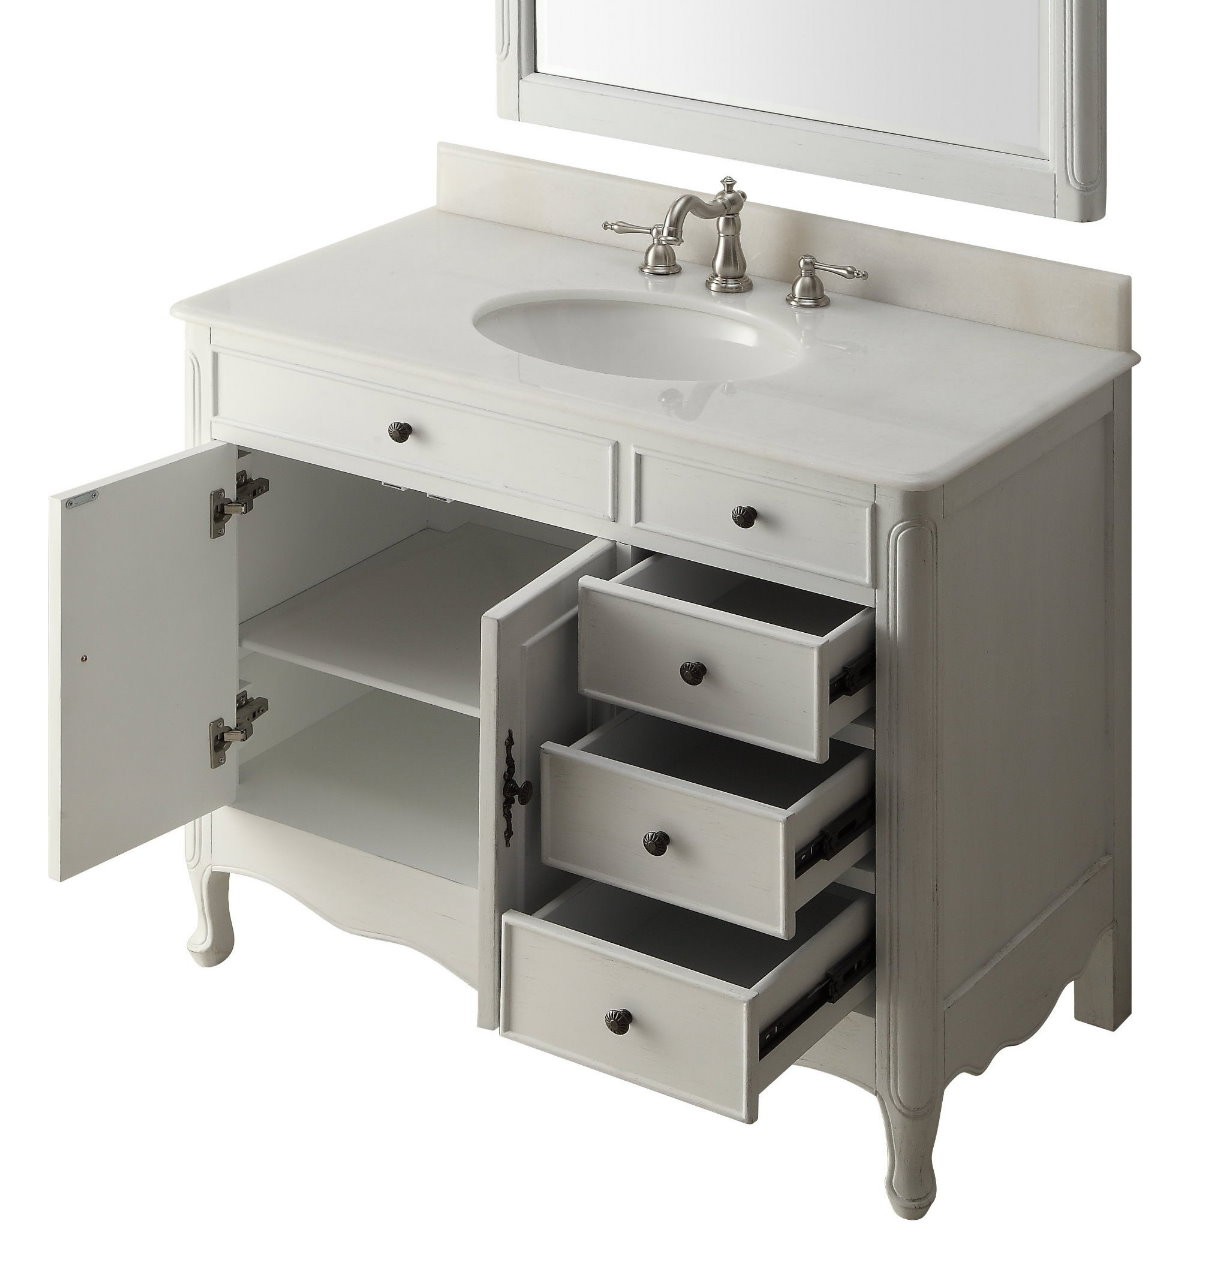 38 Inch Bathroom Vanity Cottage Style Distressed Antique White Color With 4 Drawers 38 Wx21